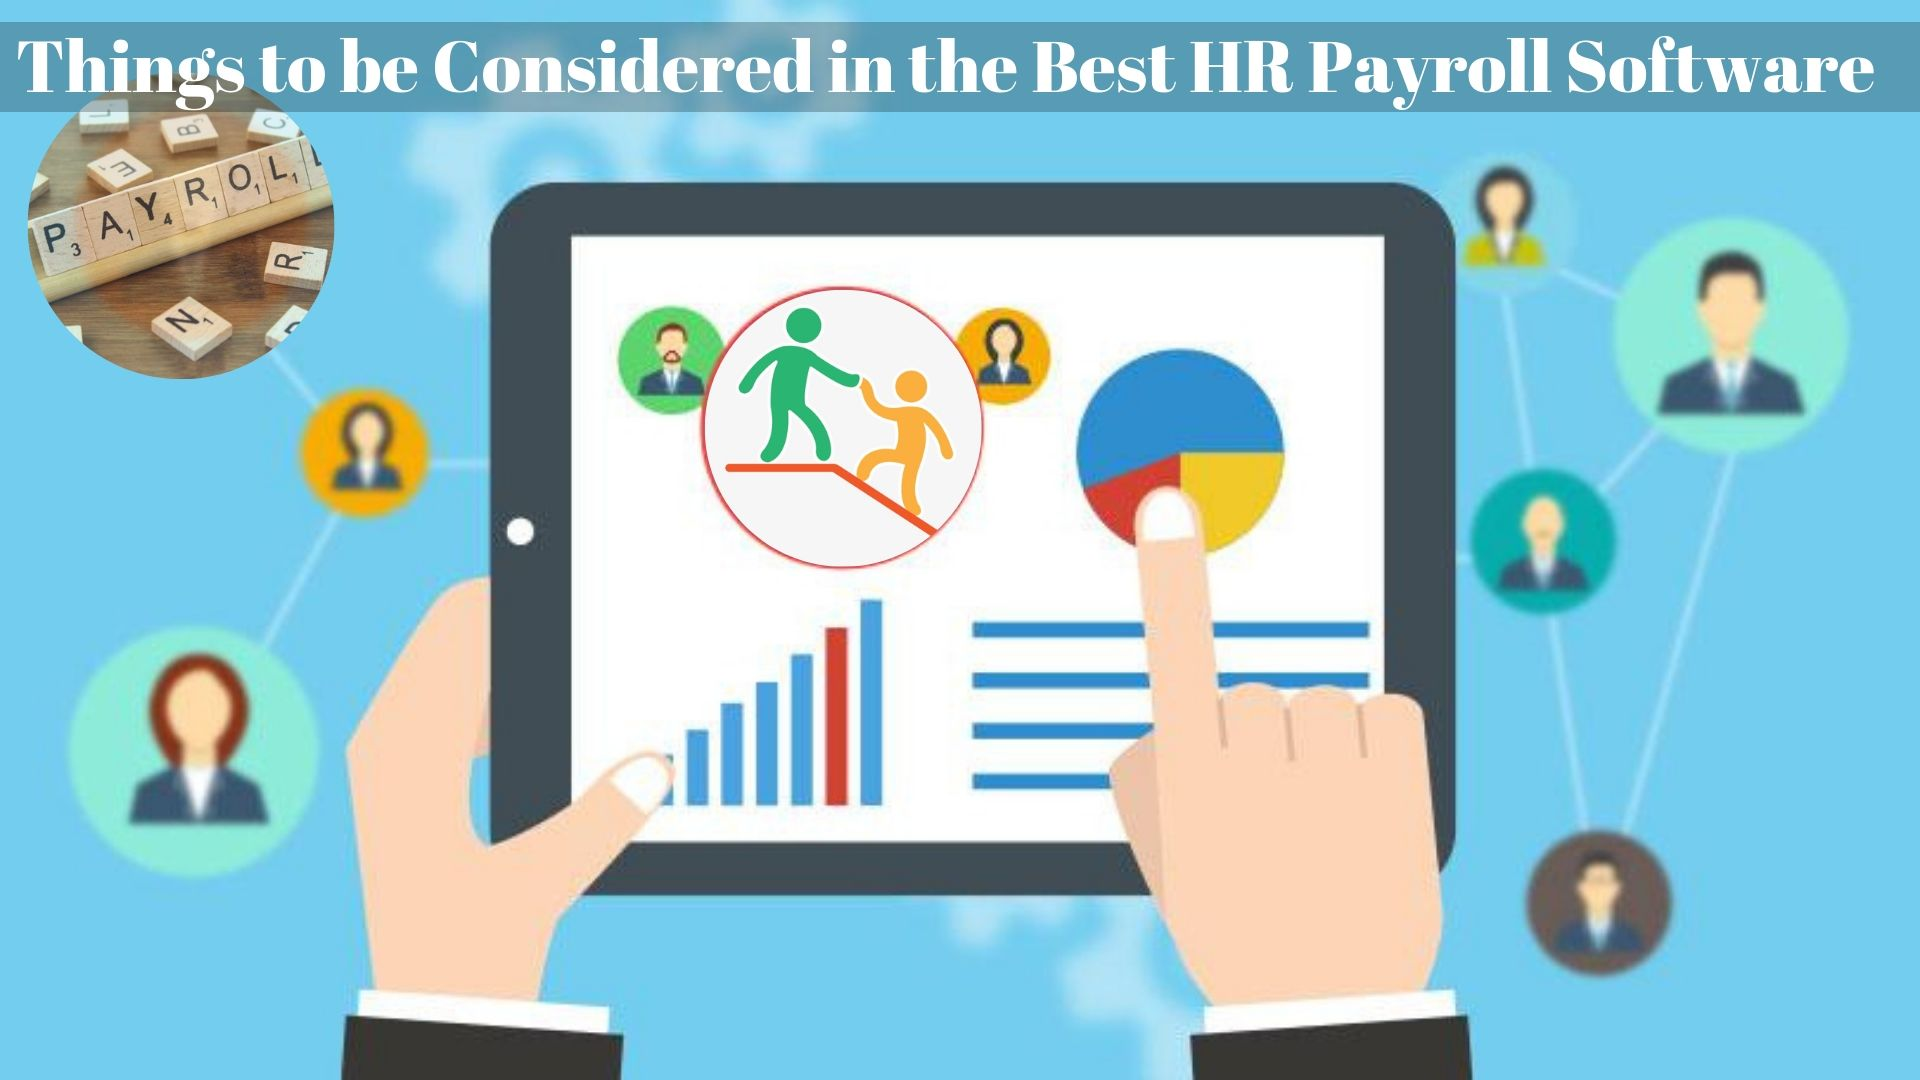 Best HR Payroll Software